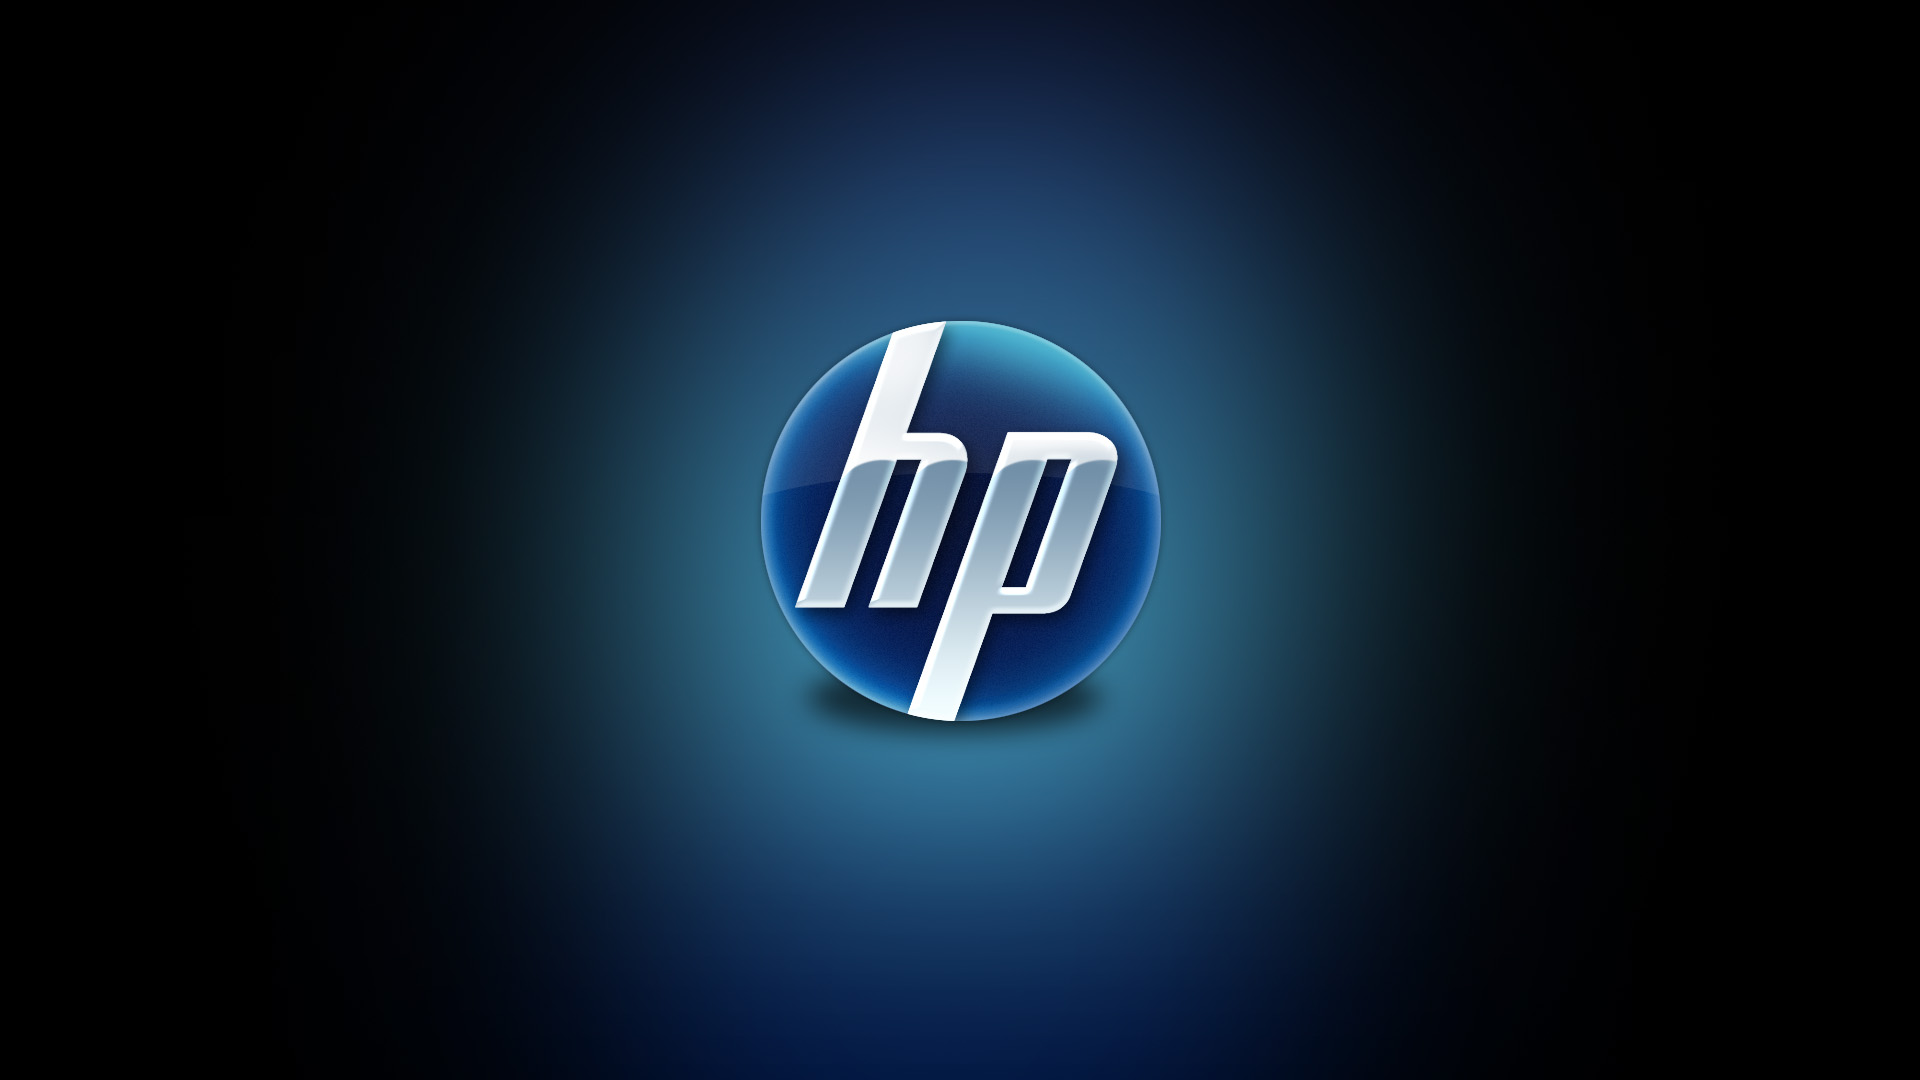 hp logo wallpapers | wallpaper.wiki